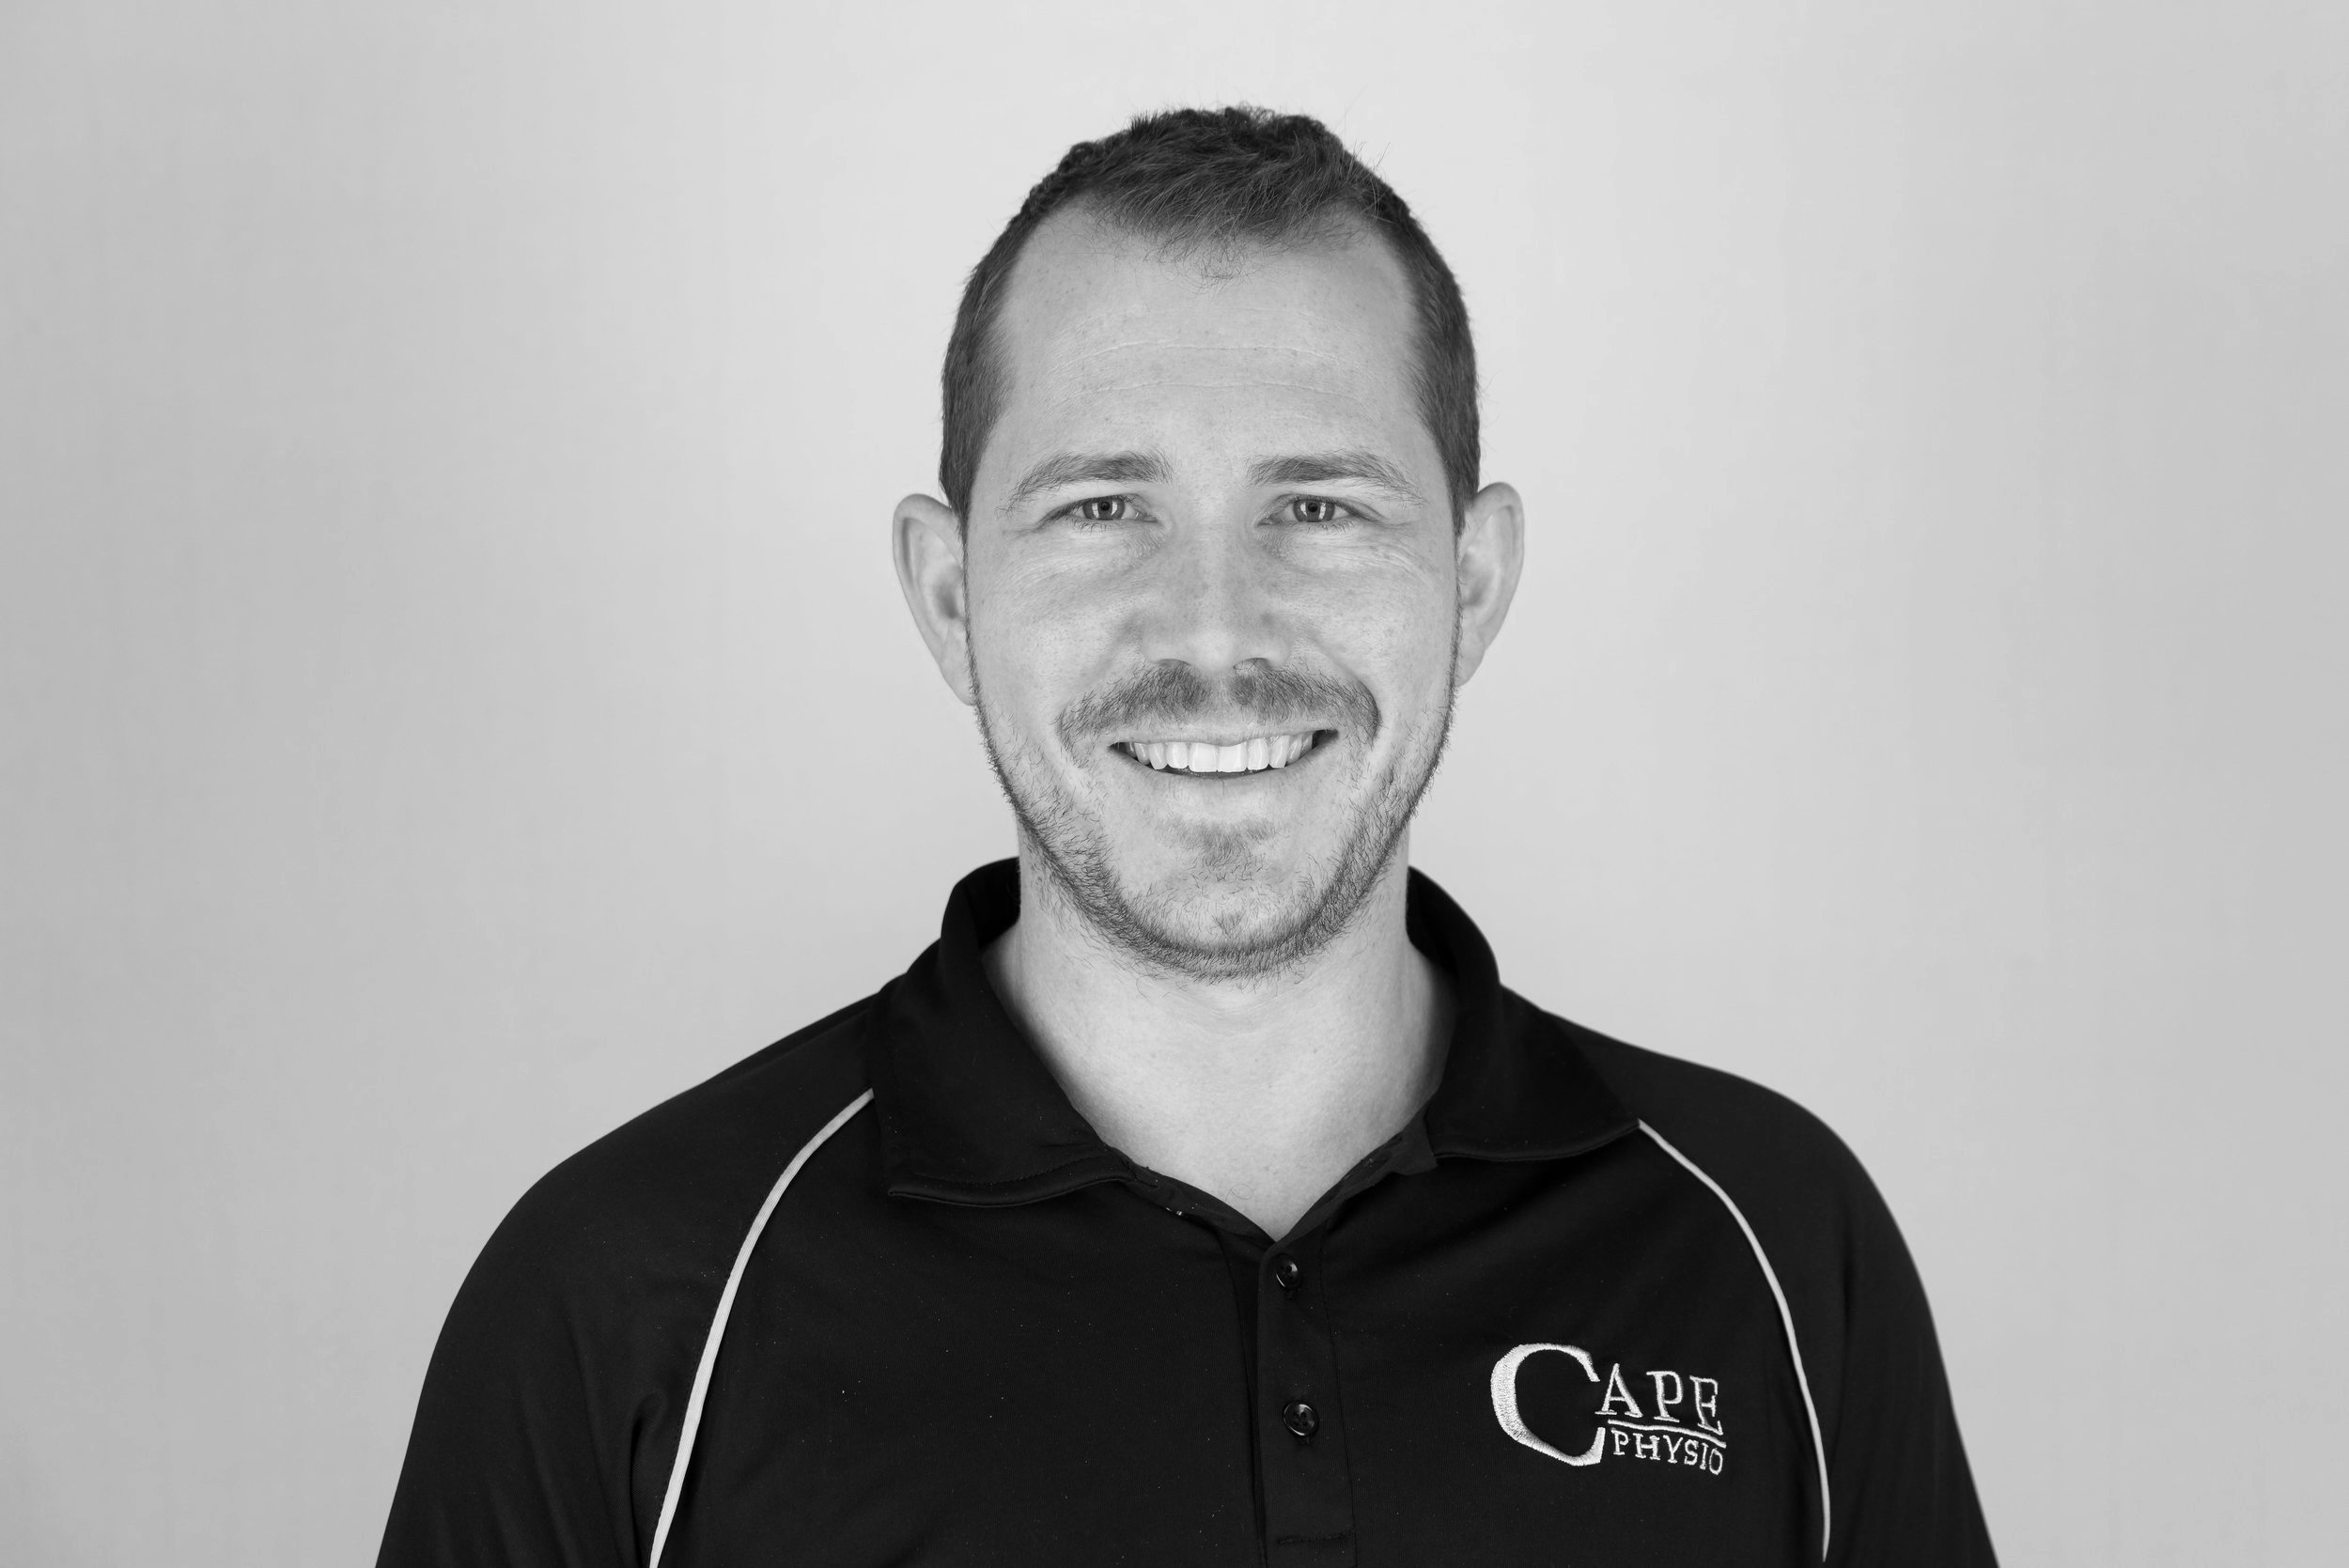 Michael McCamish – Senior Physiotherapist   Senior Physiotherapist and Managing Director  Michael has over 12 years of experience in Musculoskeletal, Orthopaedic, and Sports Physiotherapy. He has worked with Hastings Boys High School first XV since 2013.